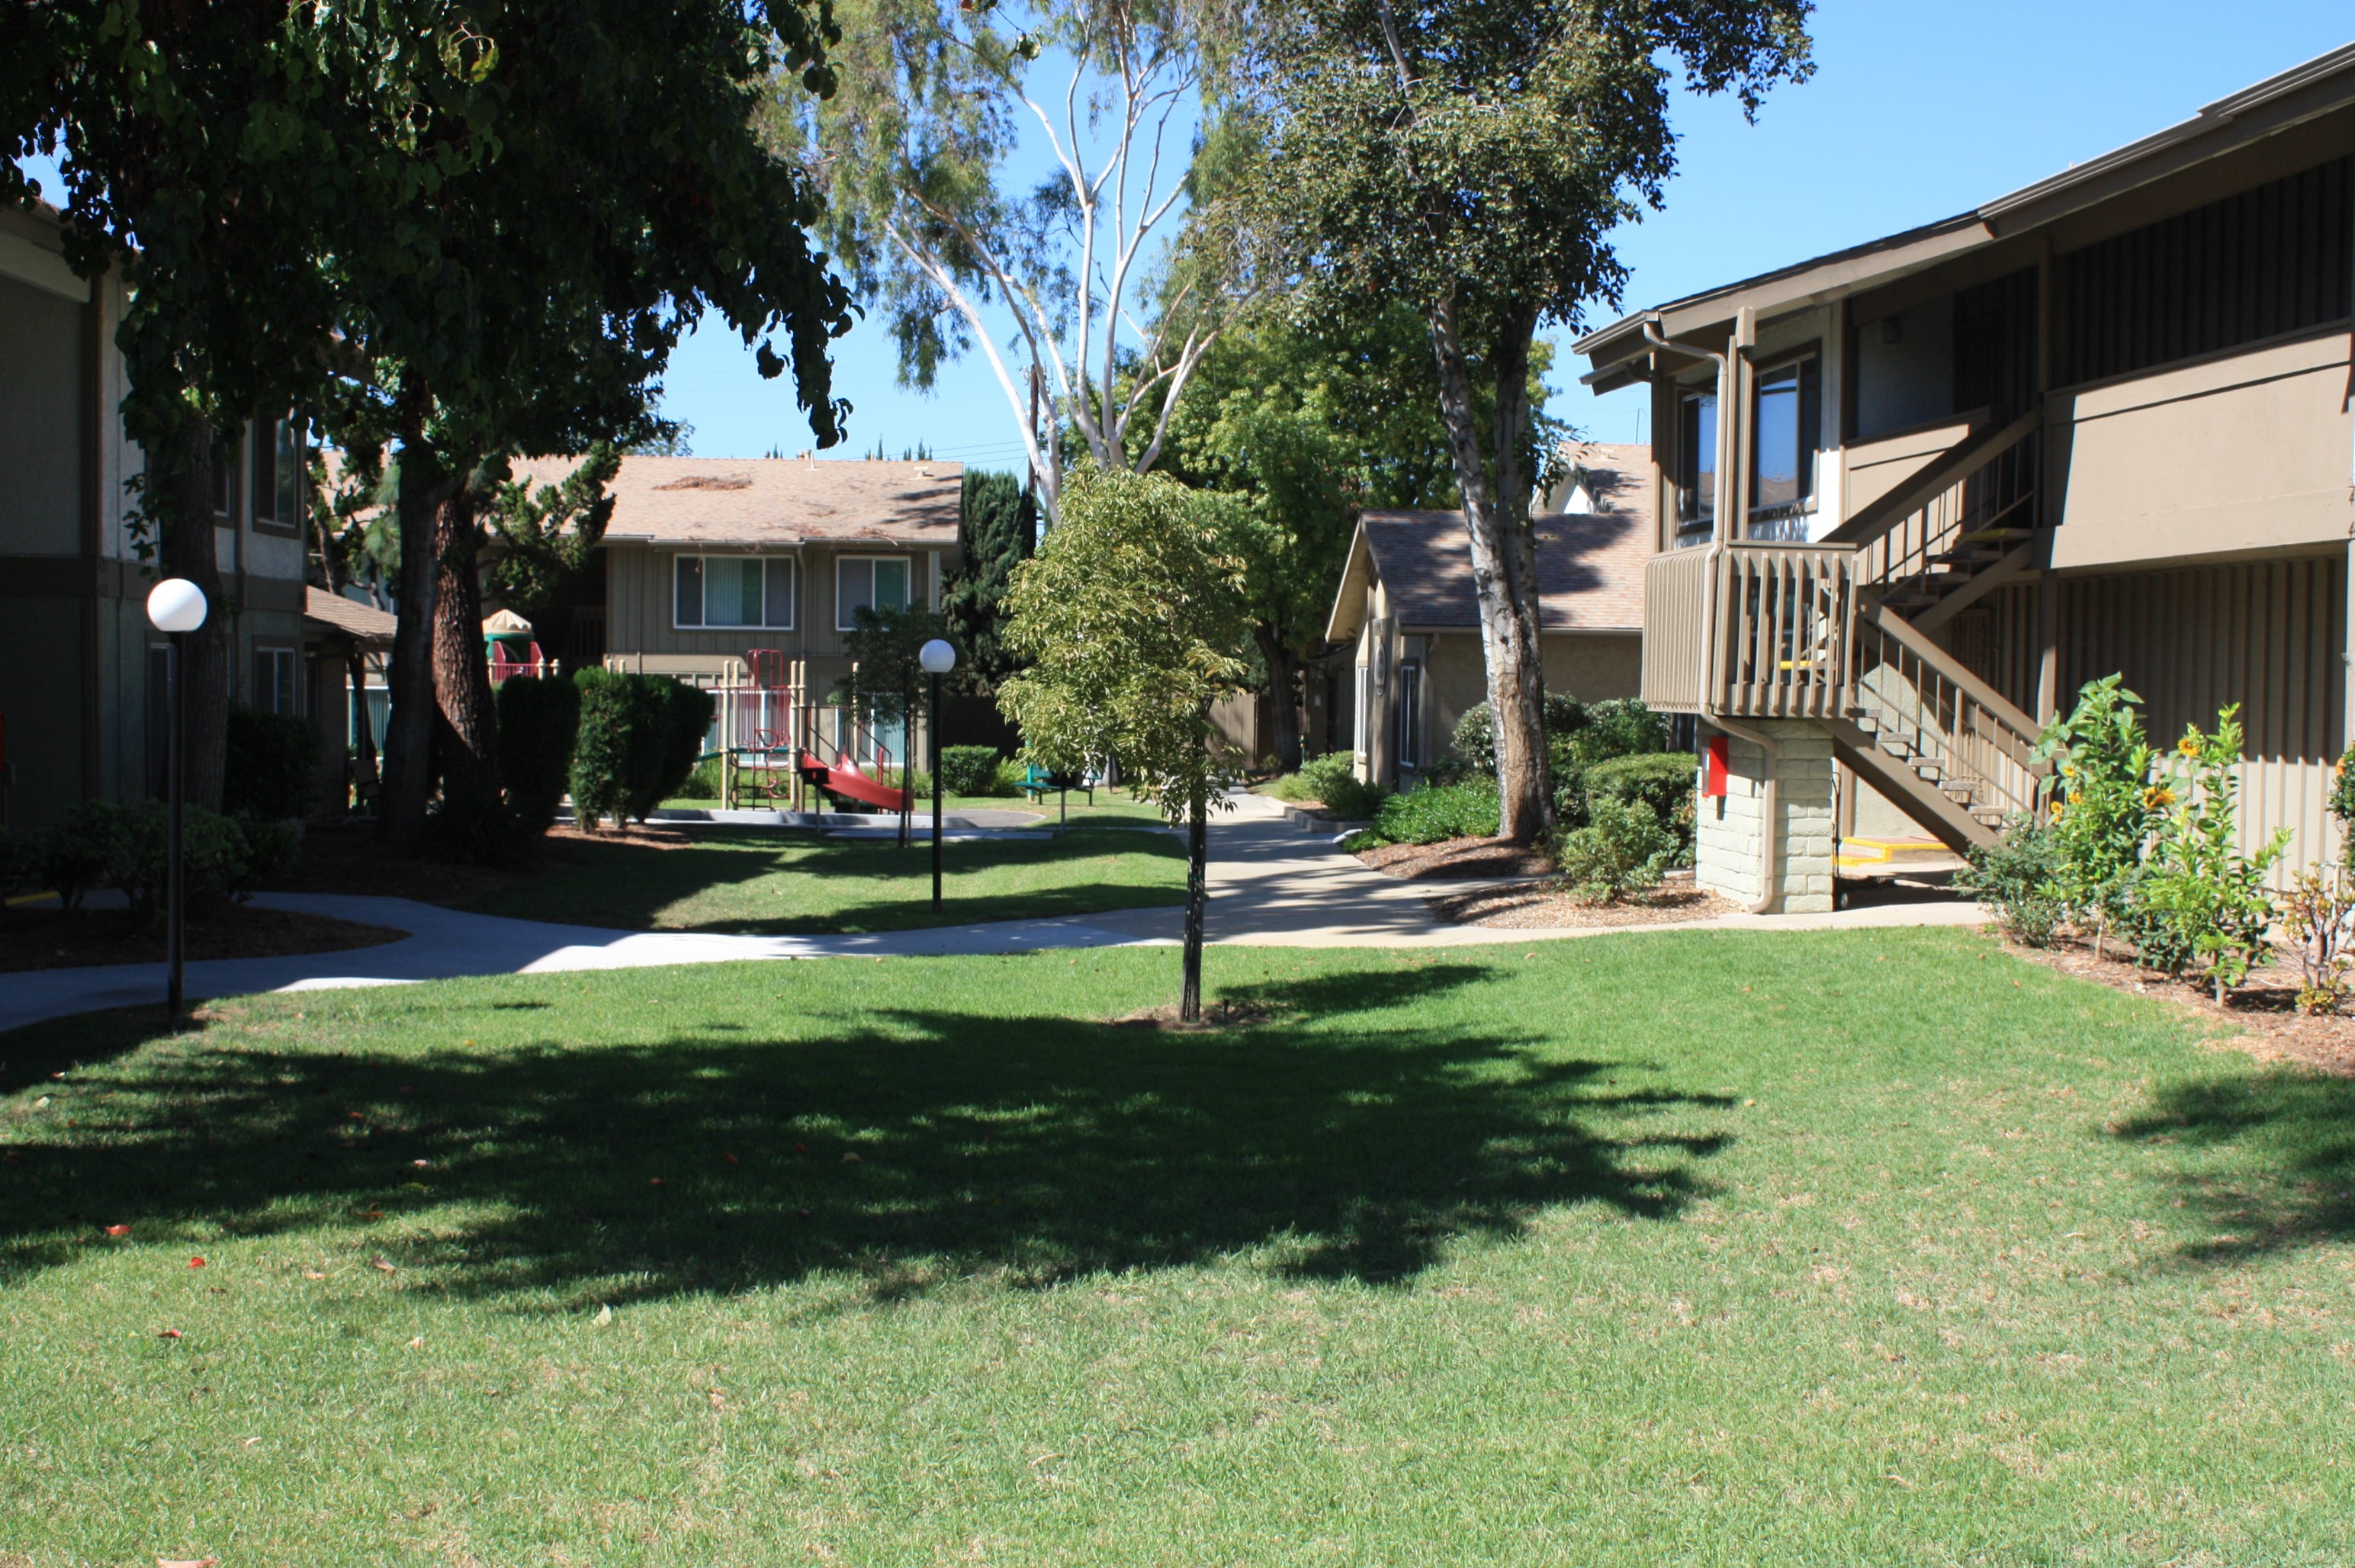 affordable housing in ontario, ca | rentalhousingdeals